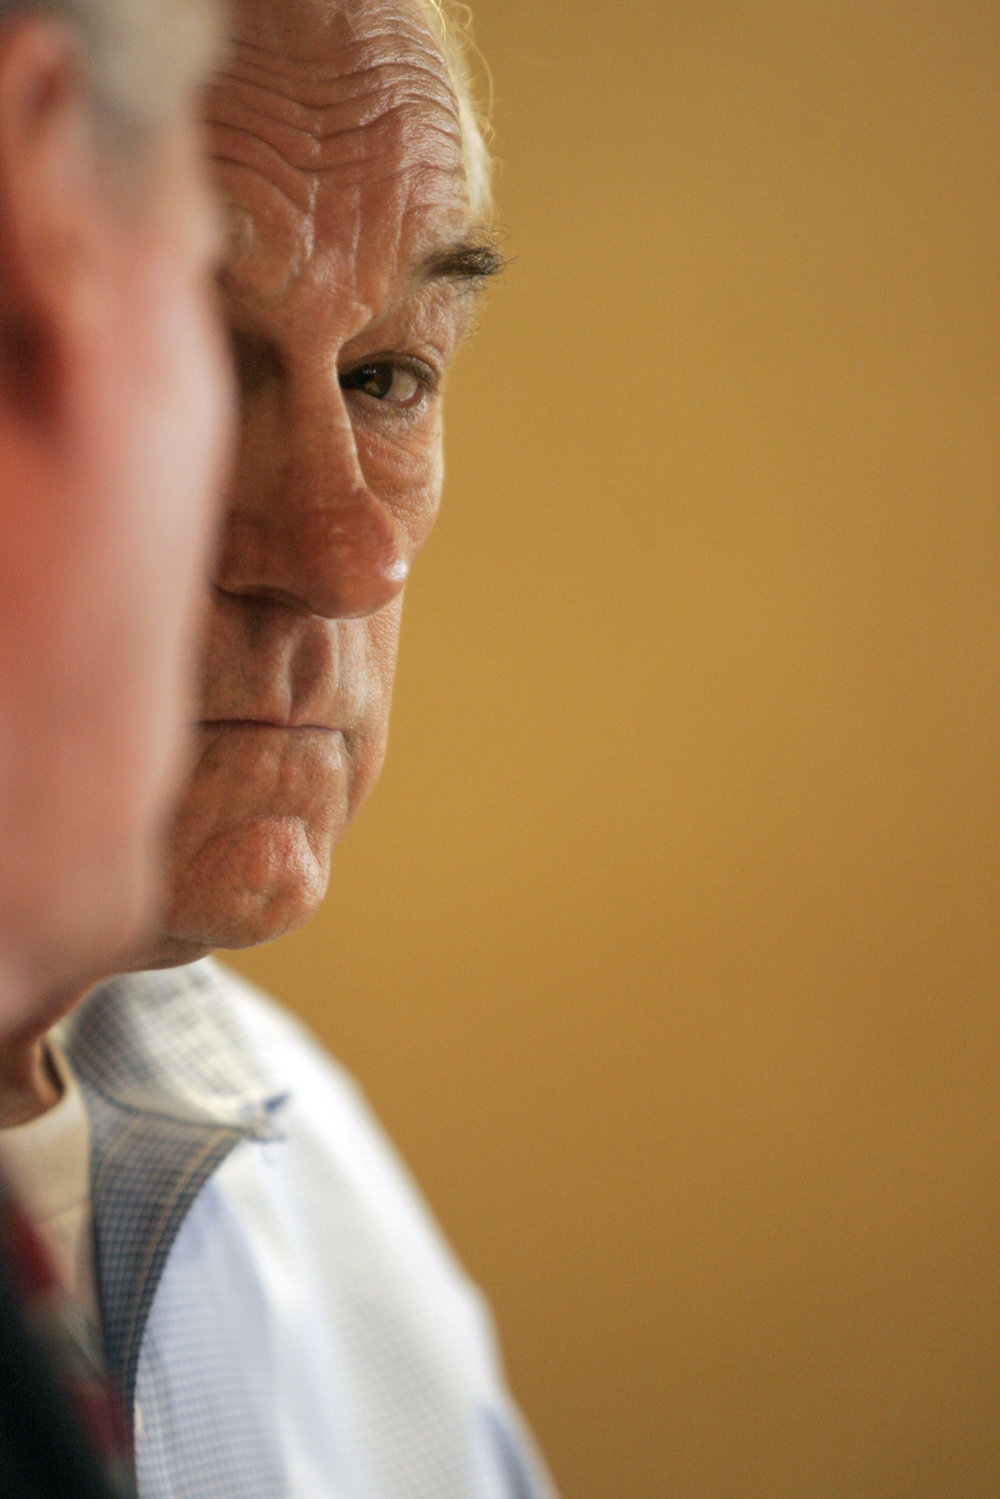 Rep. Ron Paul, R-Texas, waits to speak at a meet and greet in Iowa City.